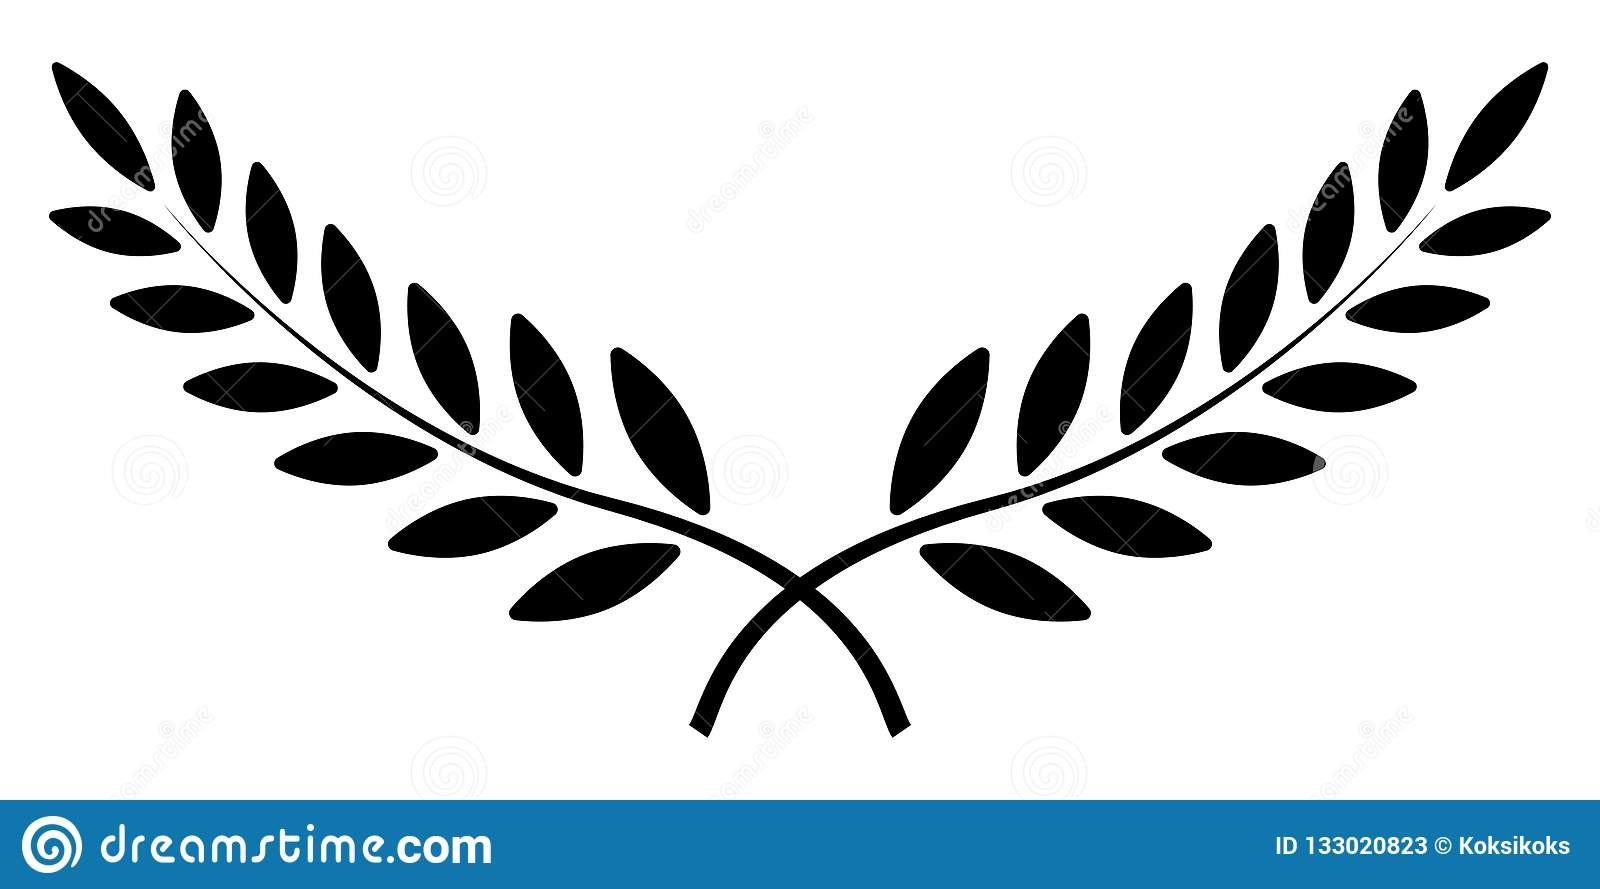 Olive Branch Laurel Wreath Vector Winner Award Symbol Sign Of Victory And Wealth In The Roman Empire